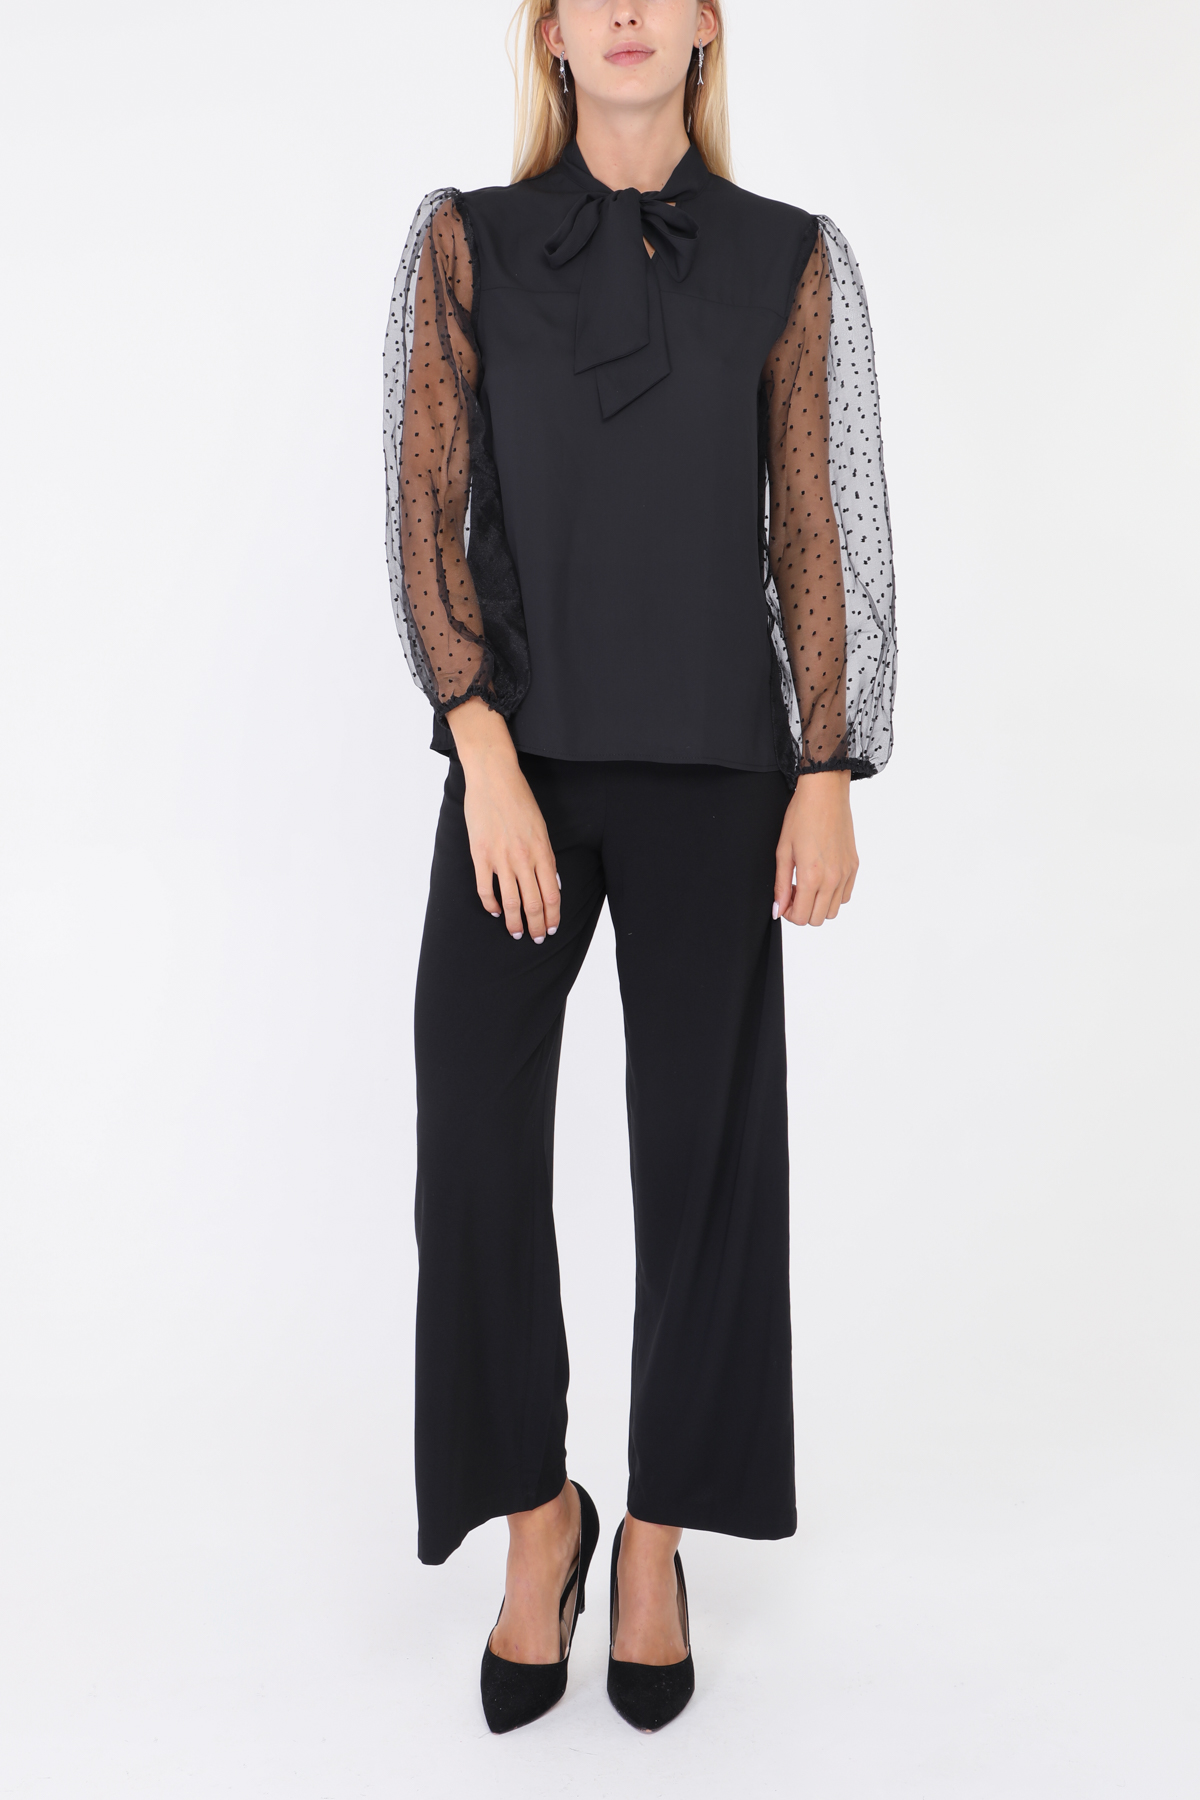 Blouses Femme Noir CONTEMPLAY A9135 #c eFashion Paris